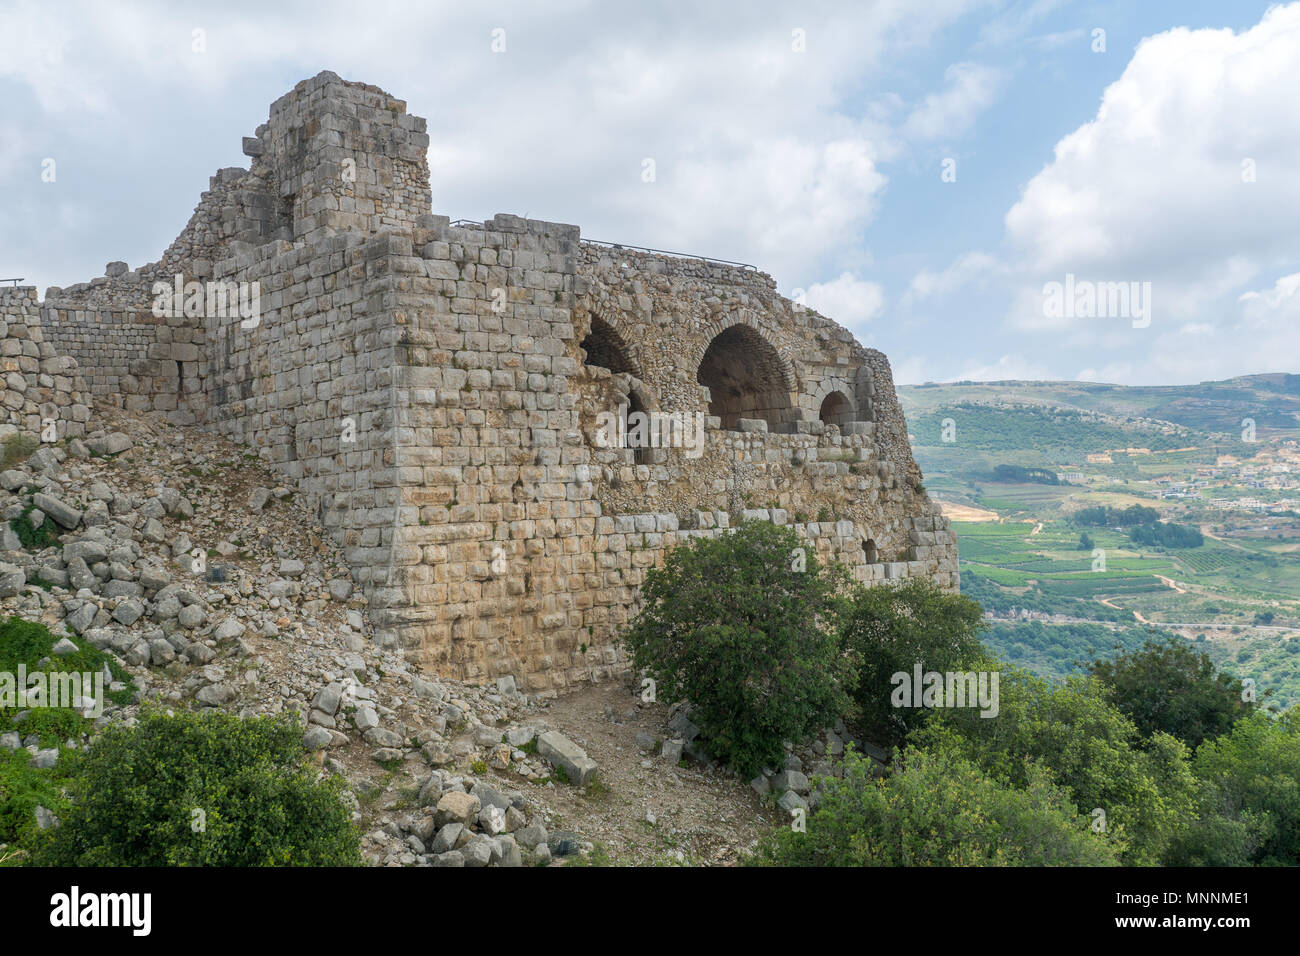 The remains of the Nimrod Fortress, a 13th century Muslim castle in northern Israel, now a national park - Stock Image